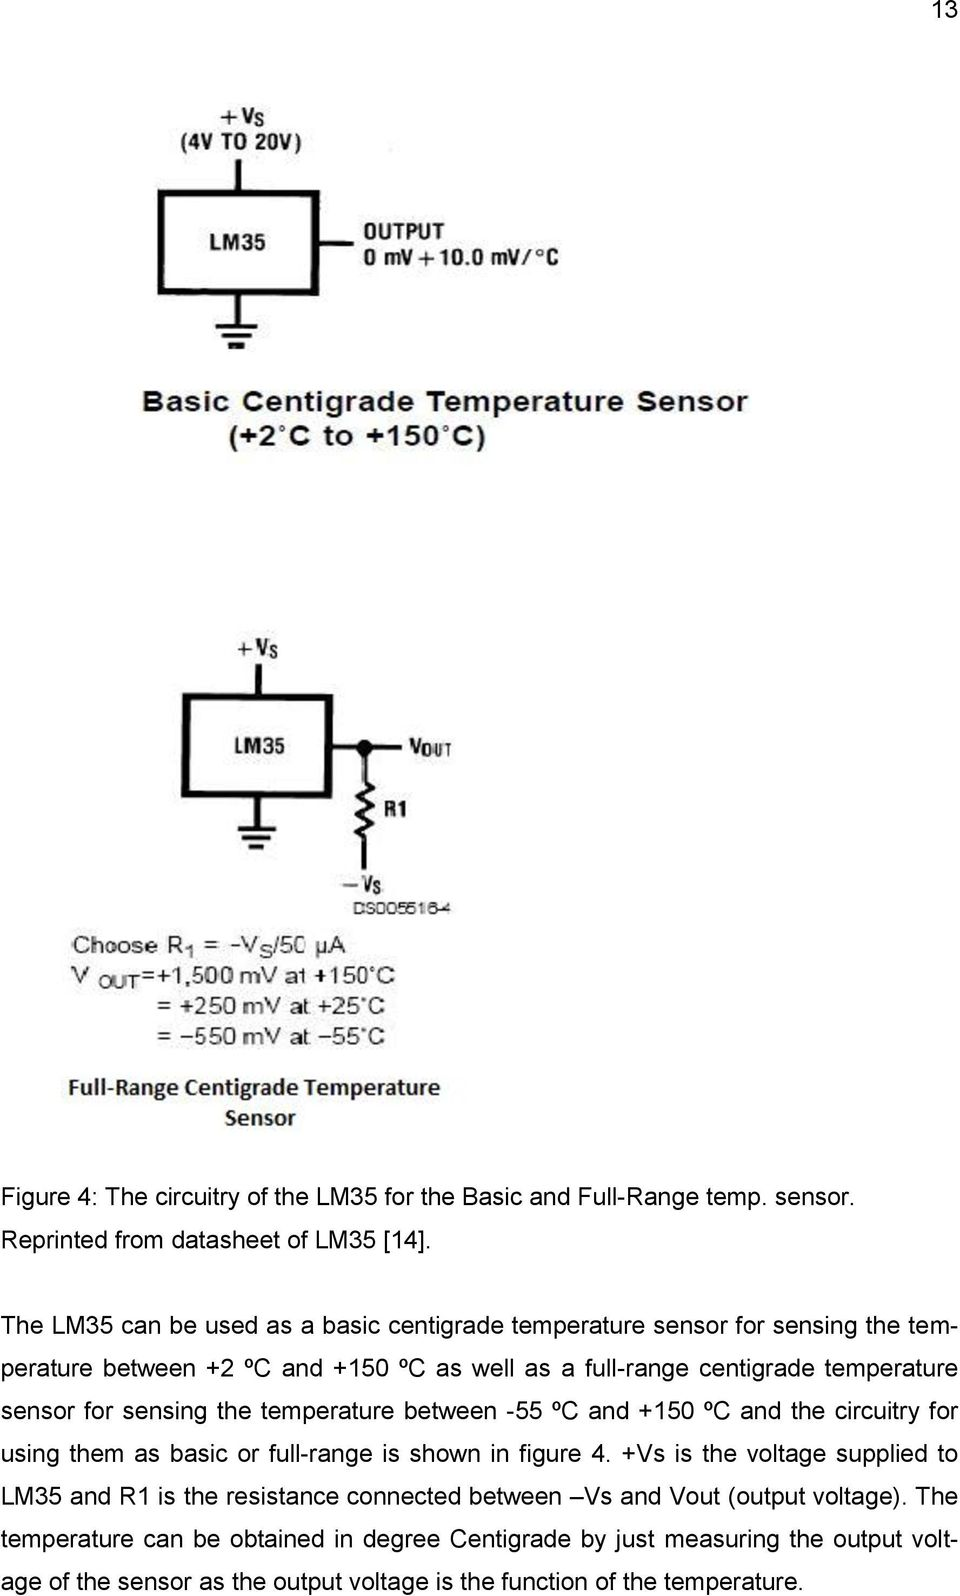 Design And Implementation Of A Smart Home System Pdf Ac Fan Speed Control Using Android Mobile Microtronics Technologies Sensing The Temperature Between 55 C 150 Circuitry For